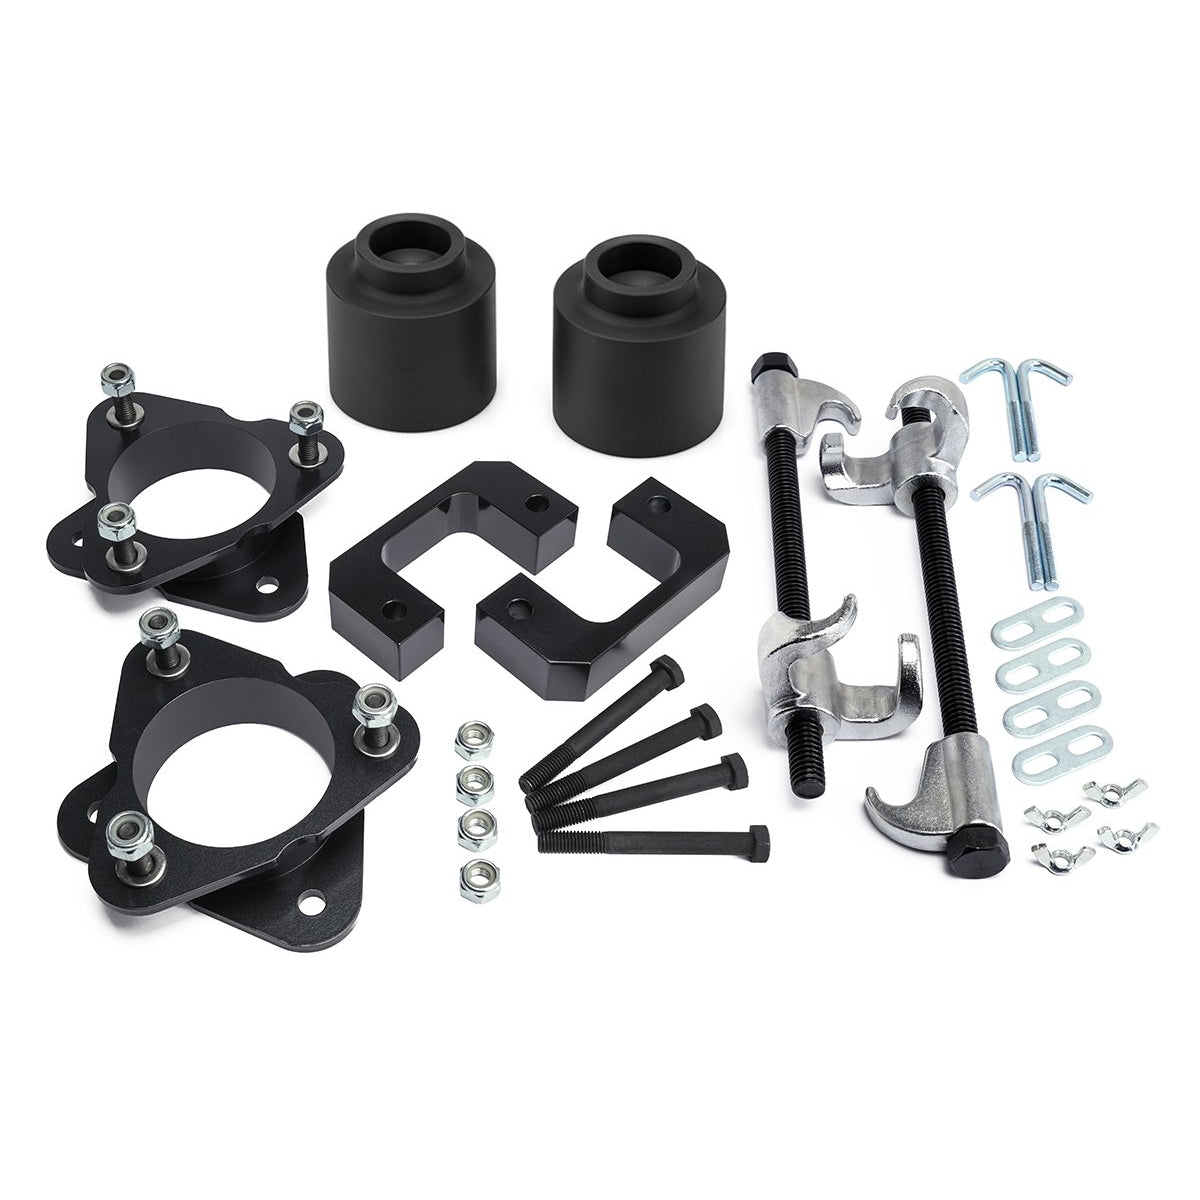 2007-2020 Chevy Tahoe 1500 Front Lift Kit with Shock Extenders with Compressor Tool